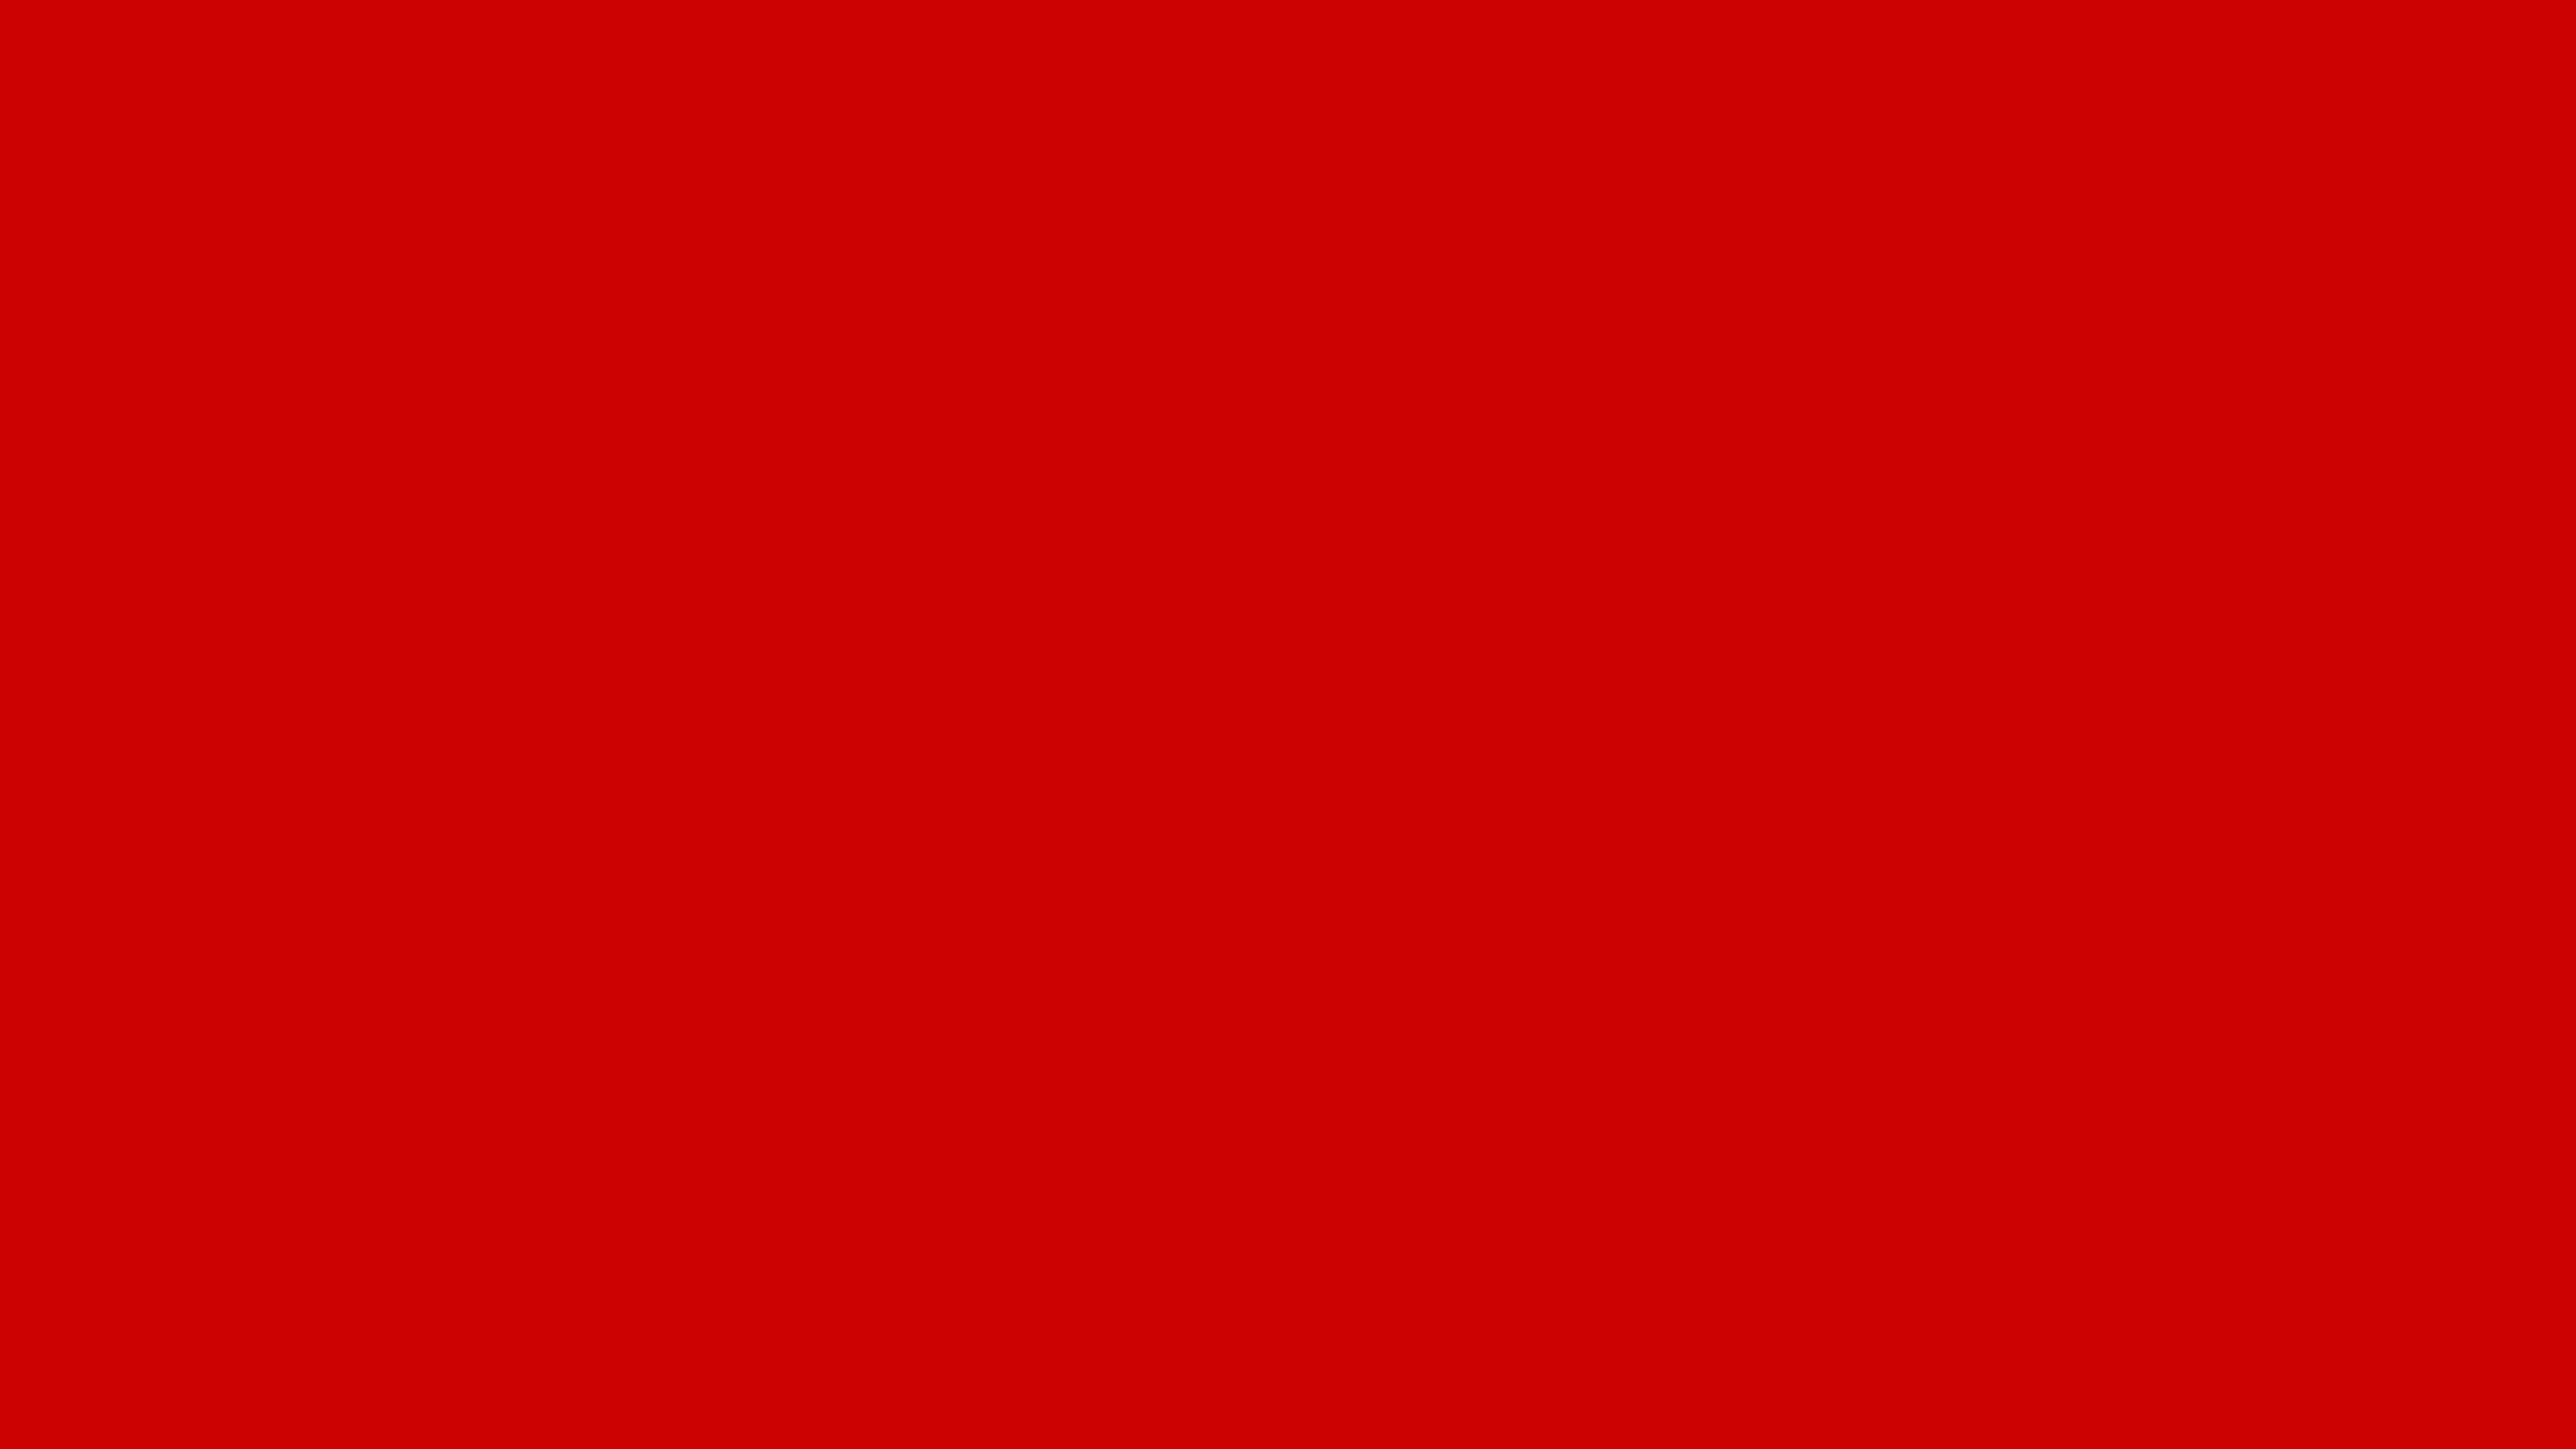 5120x2880 Boston University Red Solid Color Background